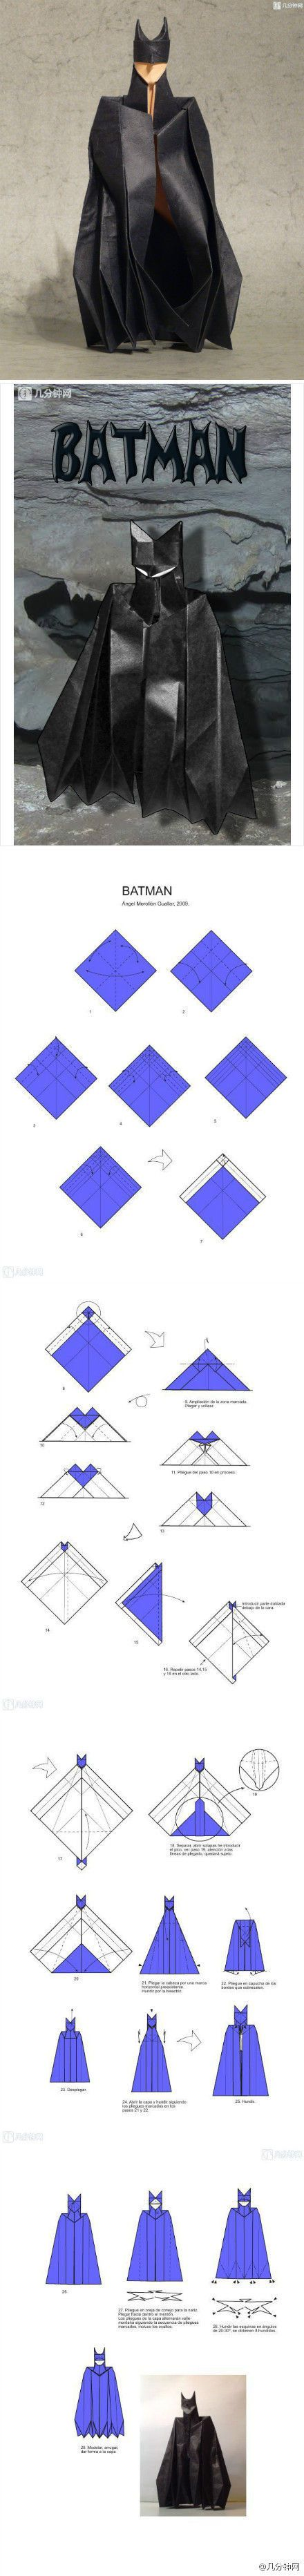 Origami Batman Folding Instructions Origami Instruction On Imgfave